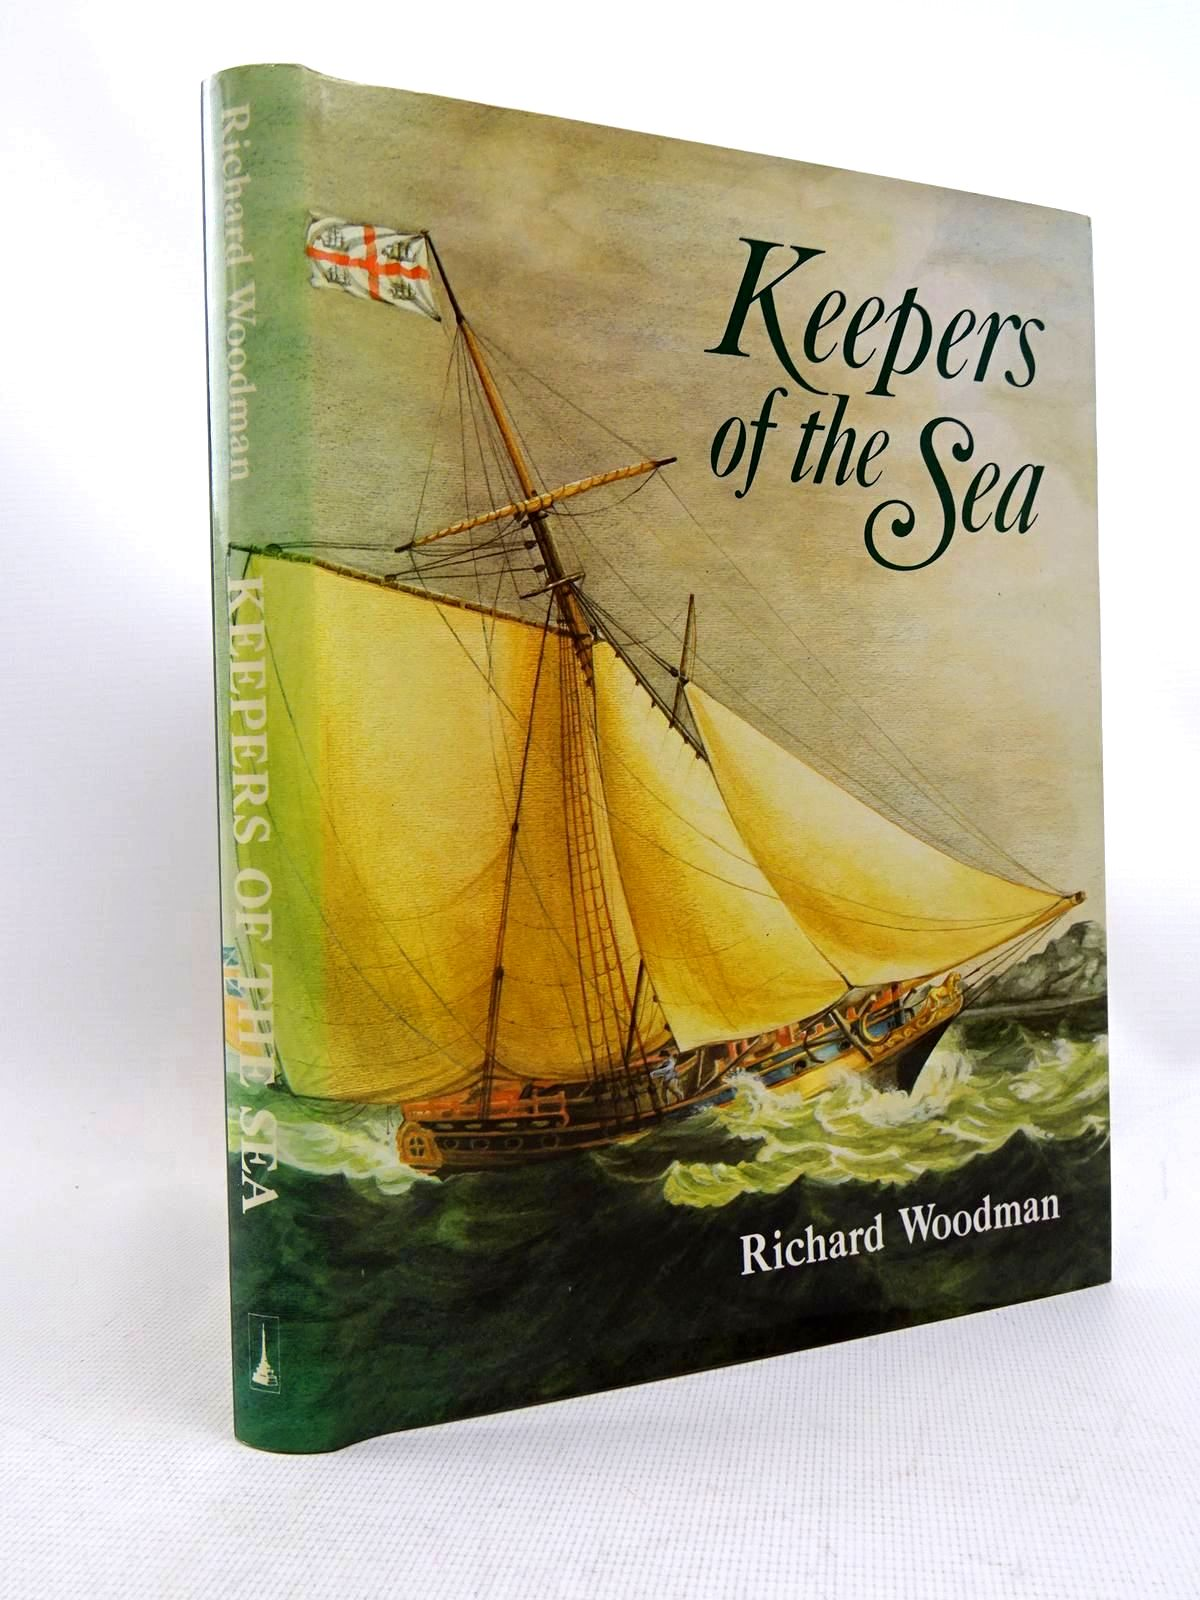 Photo of KEEPERS OF THE SEA A HISTORY OF THE YACHTS AND TENDERS OF TRINITY HOUSE written by Woodman, Richard published by Terence Dalton Limited (STOCK CODE: 2128042)  for sale by Stella & Rose's Books